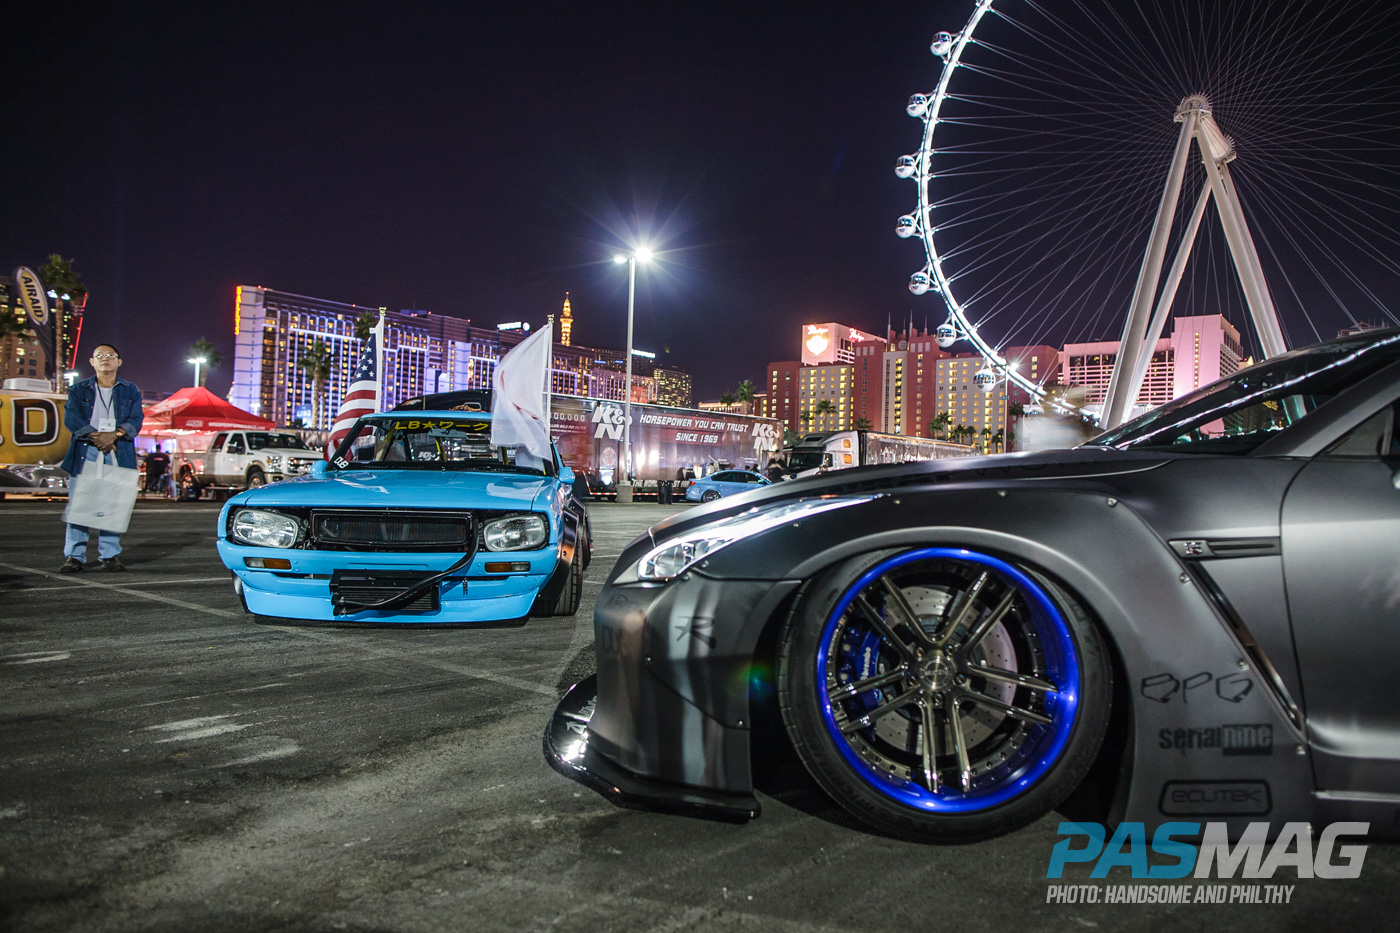 Shakotan Skyline: The Embodiment of Liberty Walk (Photo by Phillip Awad)